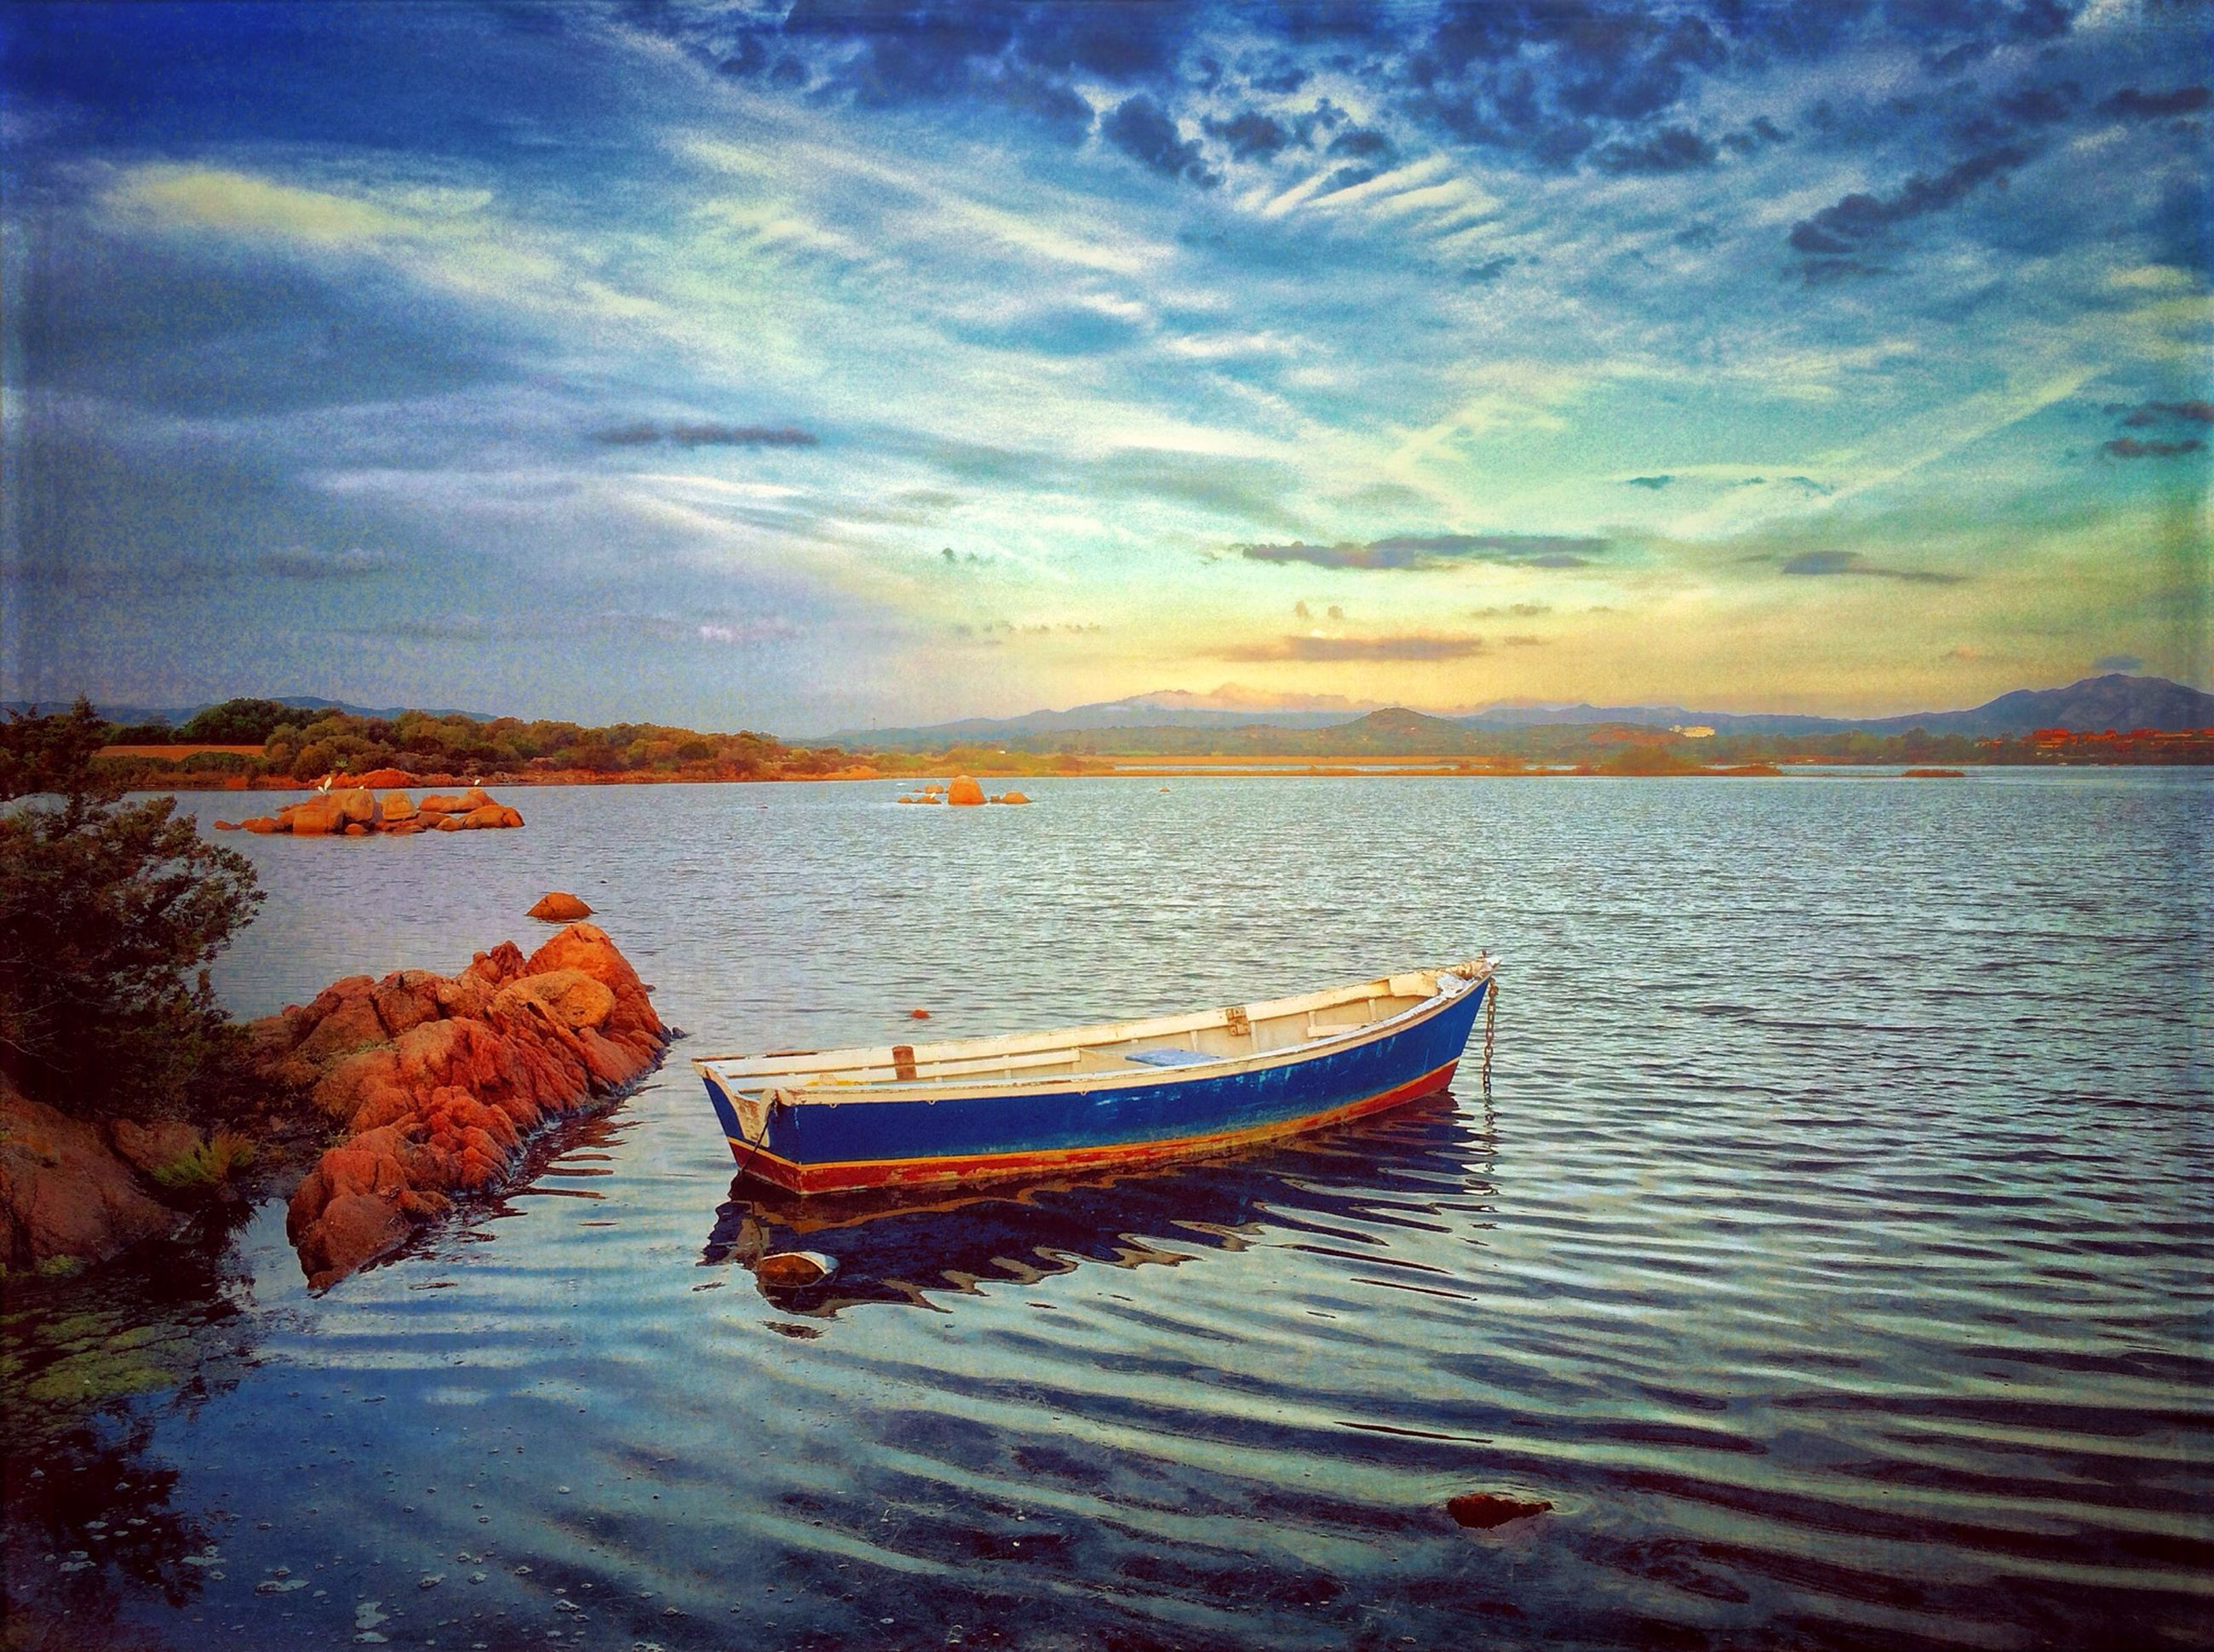 water, sky, tranquil scene, tranquility, scenics, beauty in nature, nautical vessel, boat, sea, cloud - sky, nature, transportation, lake, waterfront, idyllic, cloud, sunset, rippled, calm, moored